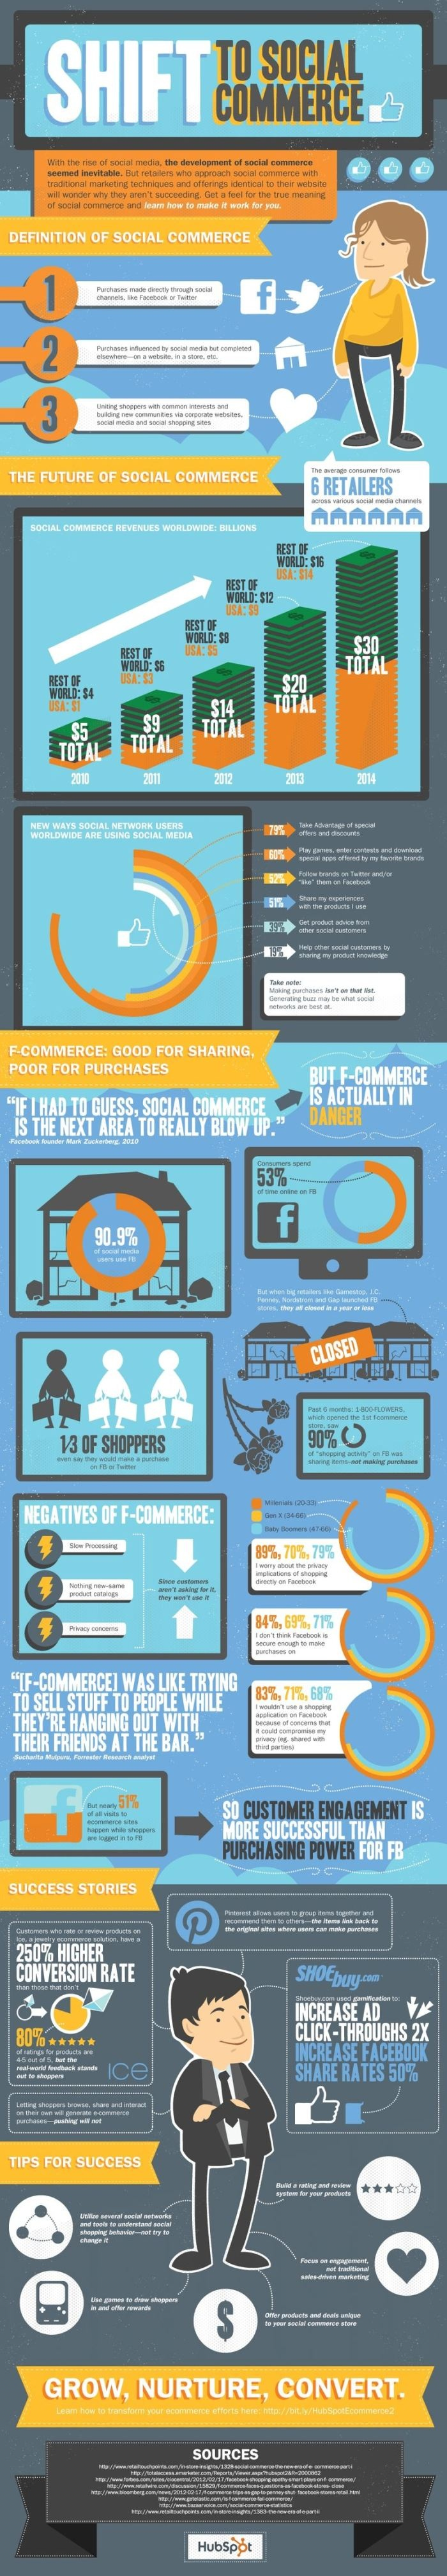 Shift to Social Commerce